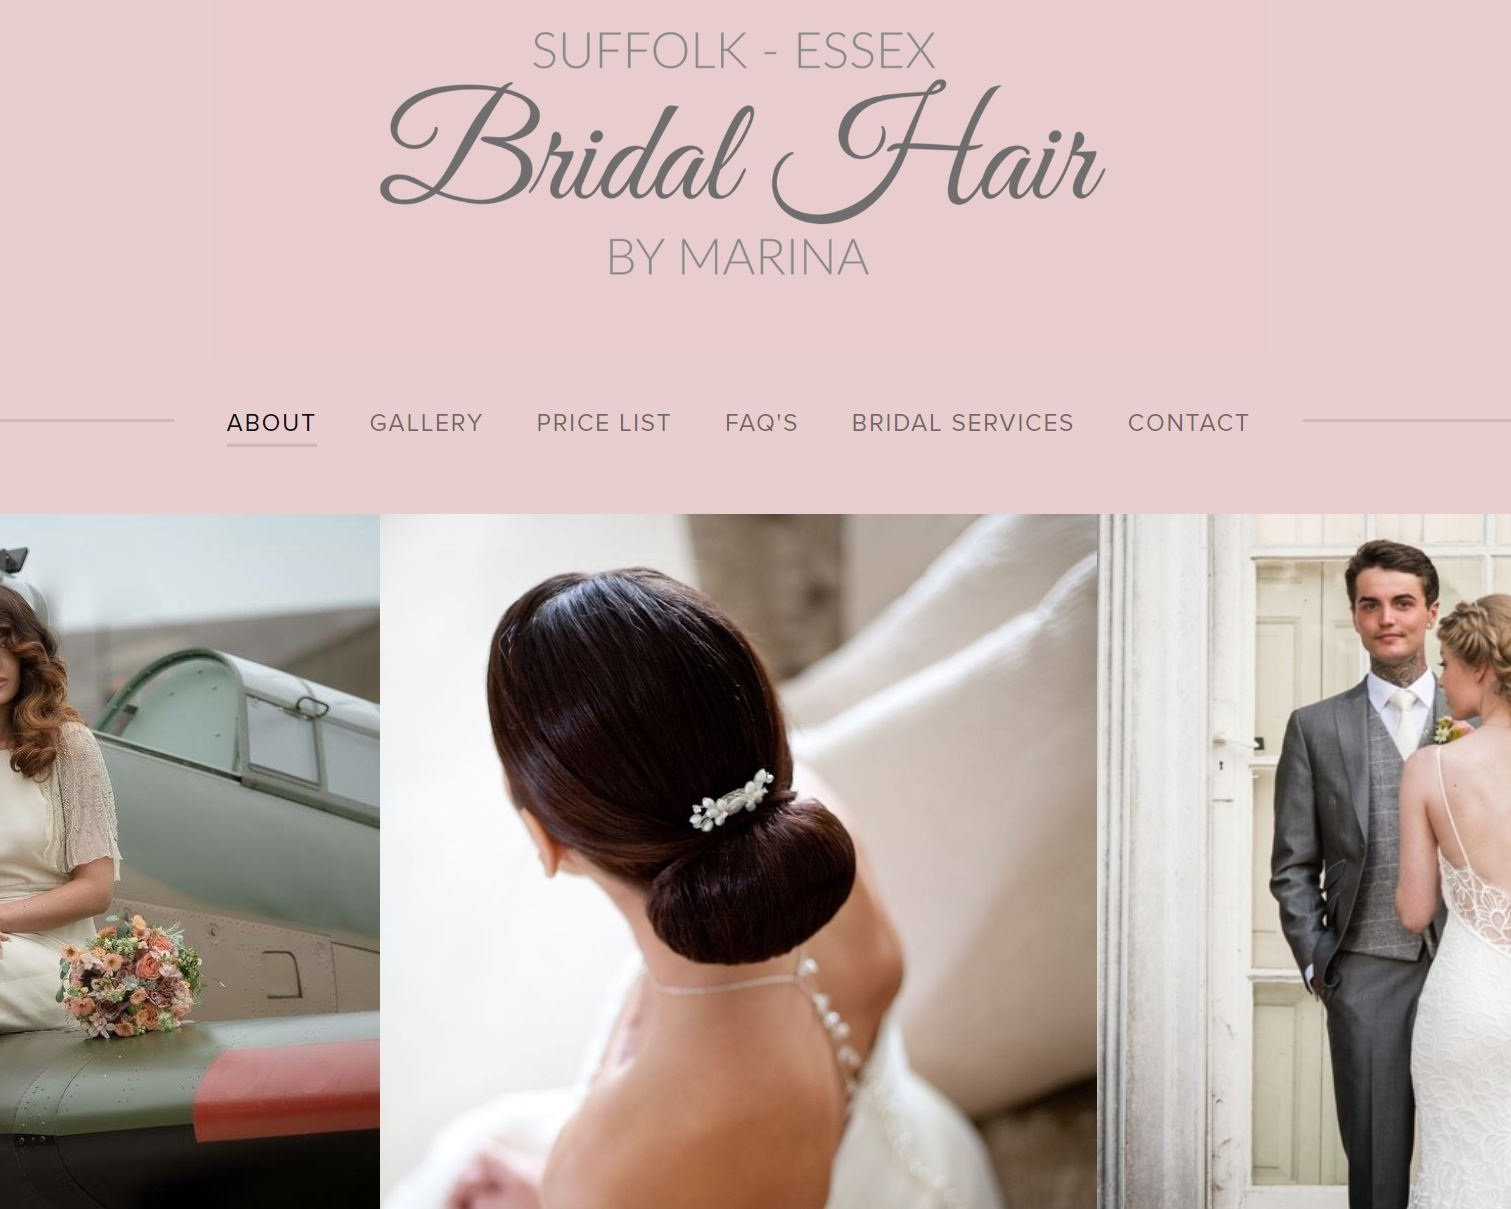 """Bridal Hair Essex - As featured on the cover of """"An Essex Wedding Magazine"""" Marina is a renowned wedding hair stylist based in the South East with over 25 years' experience in the industry specialising in occasion, wedding and fashion hair styling."""